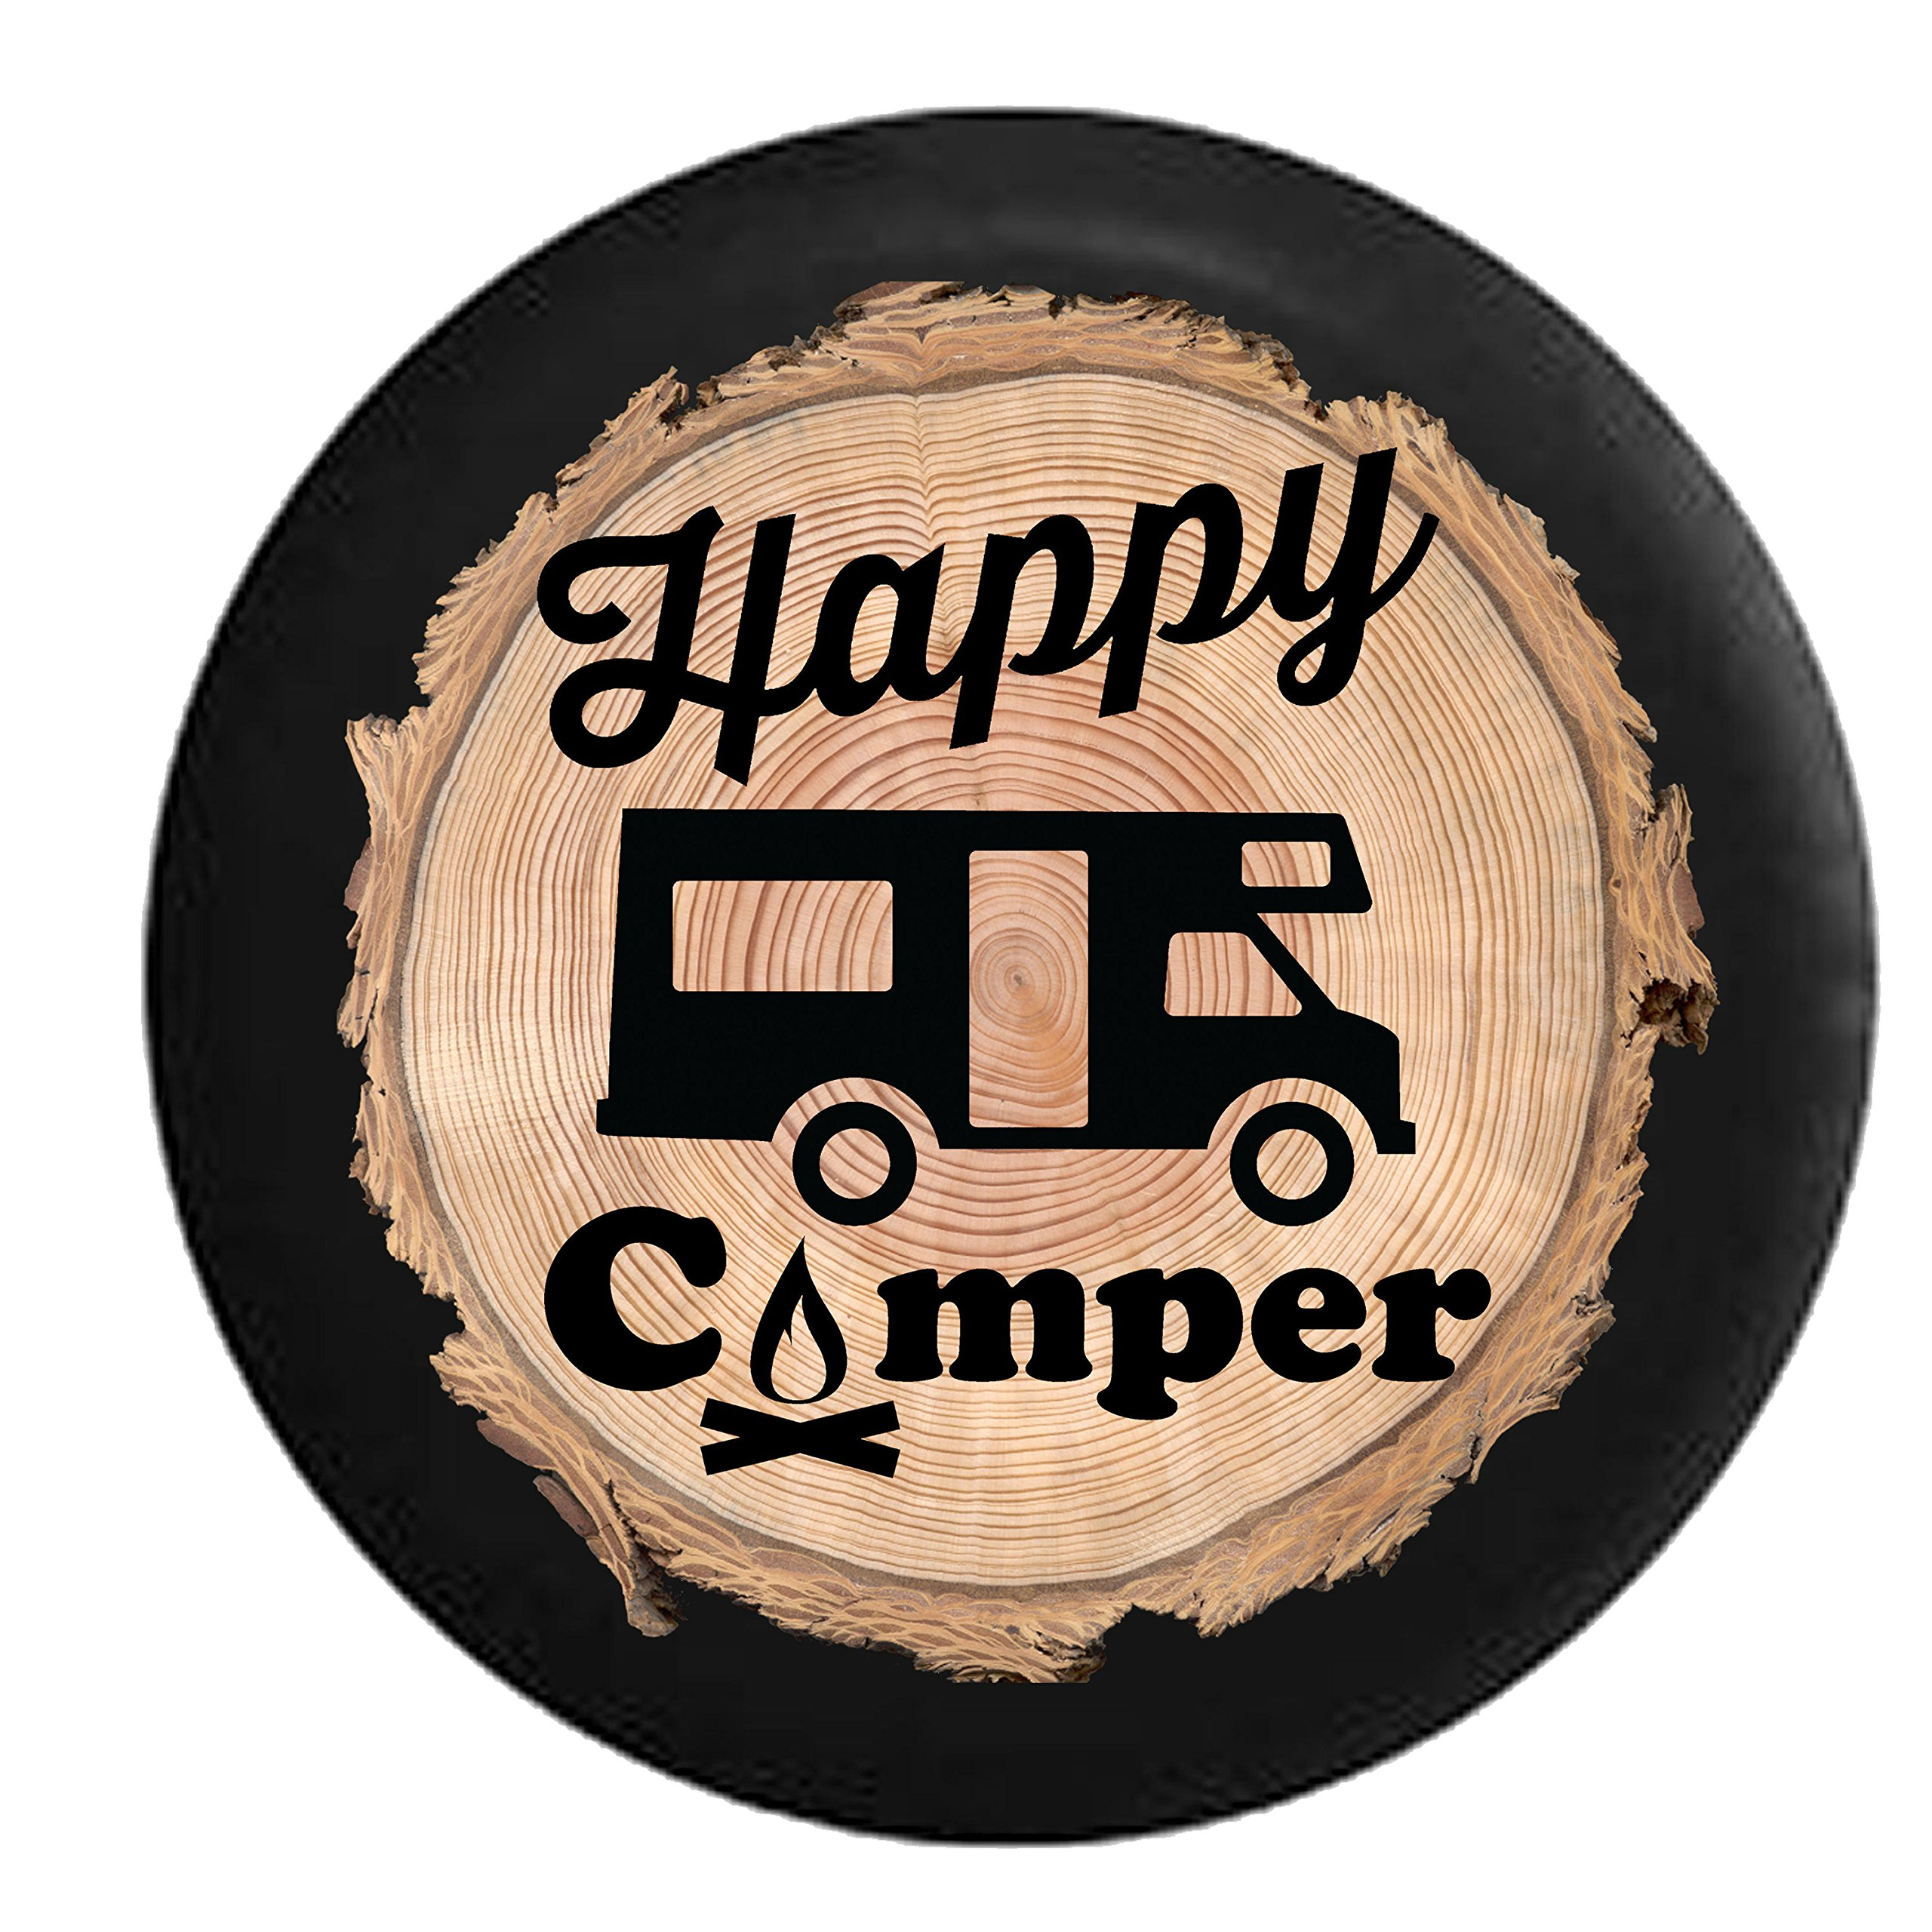 Firewood Series - Happy Camper Camp Fire Recreational Vehicle Motorhome RV Spare Tire Cover Black 35 in